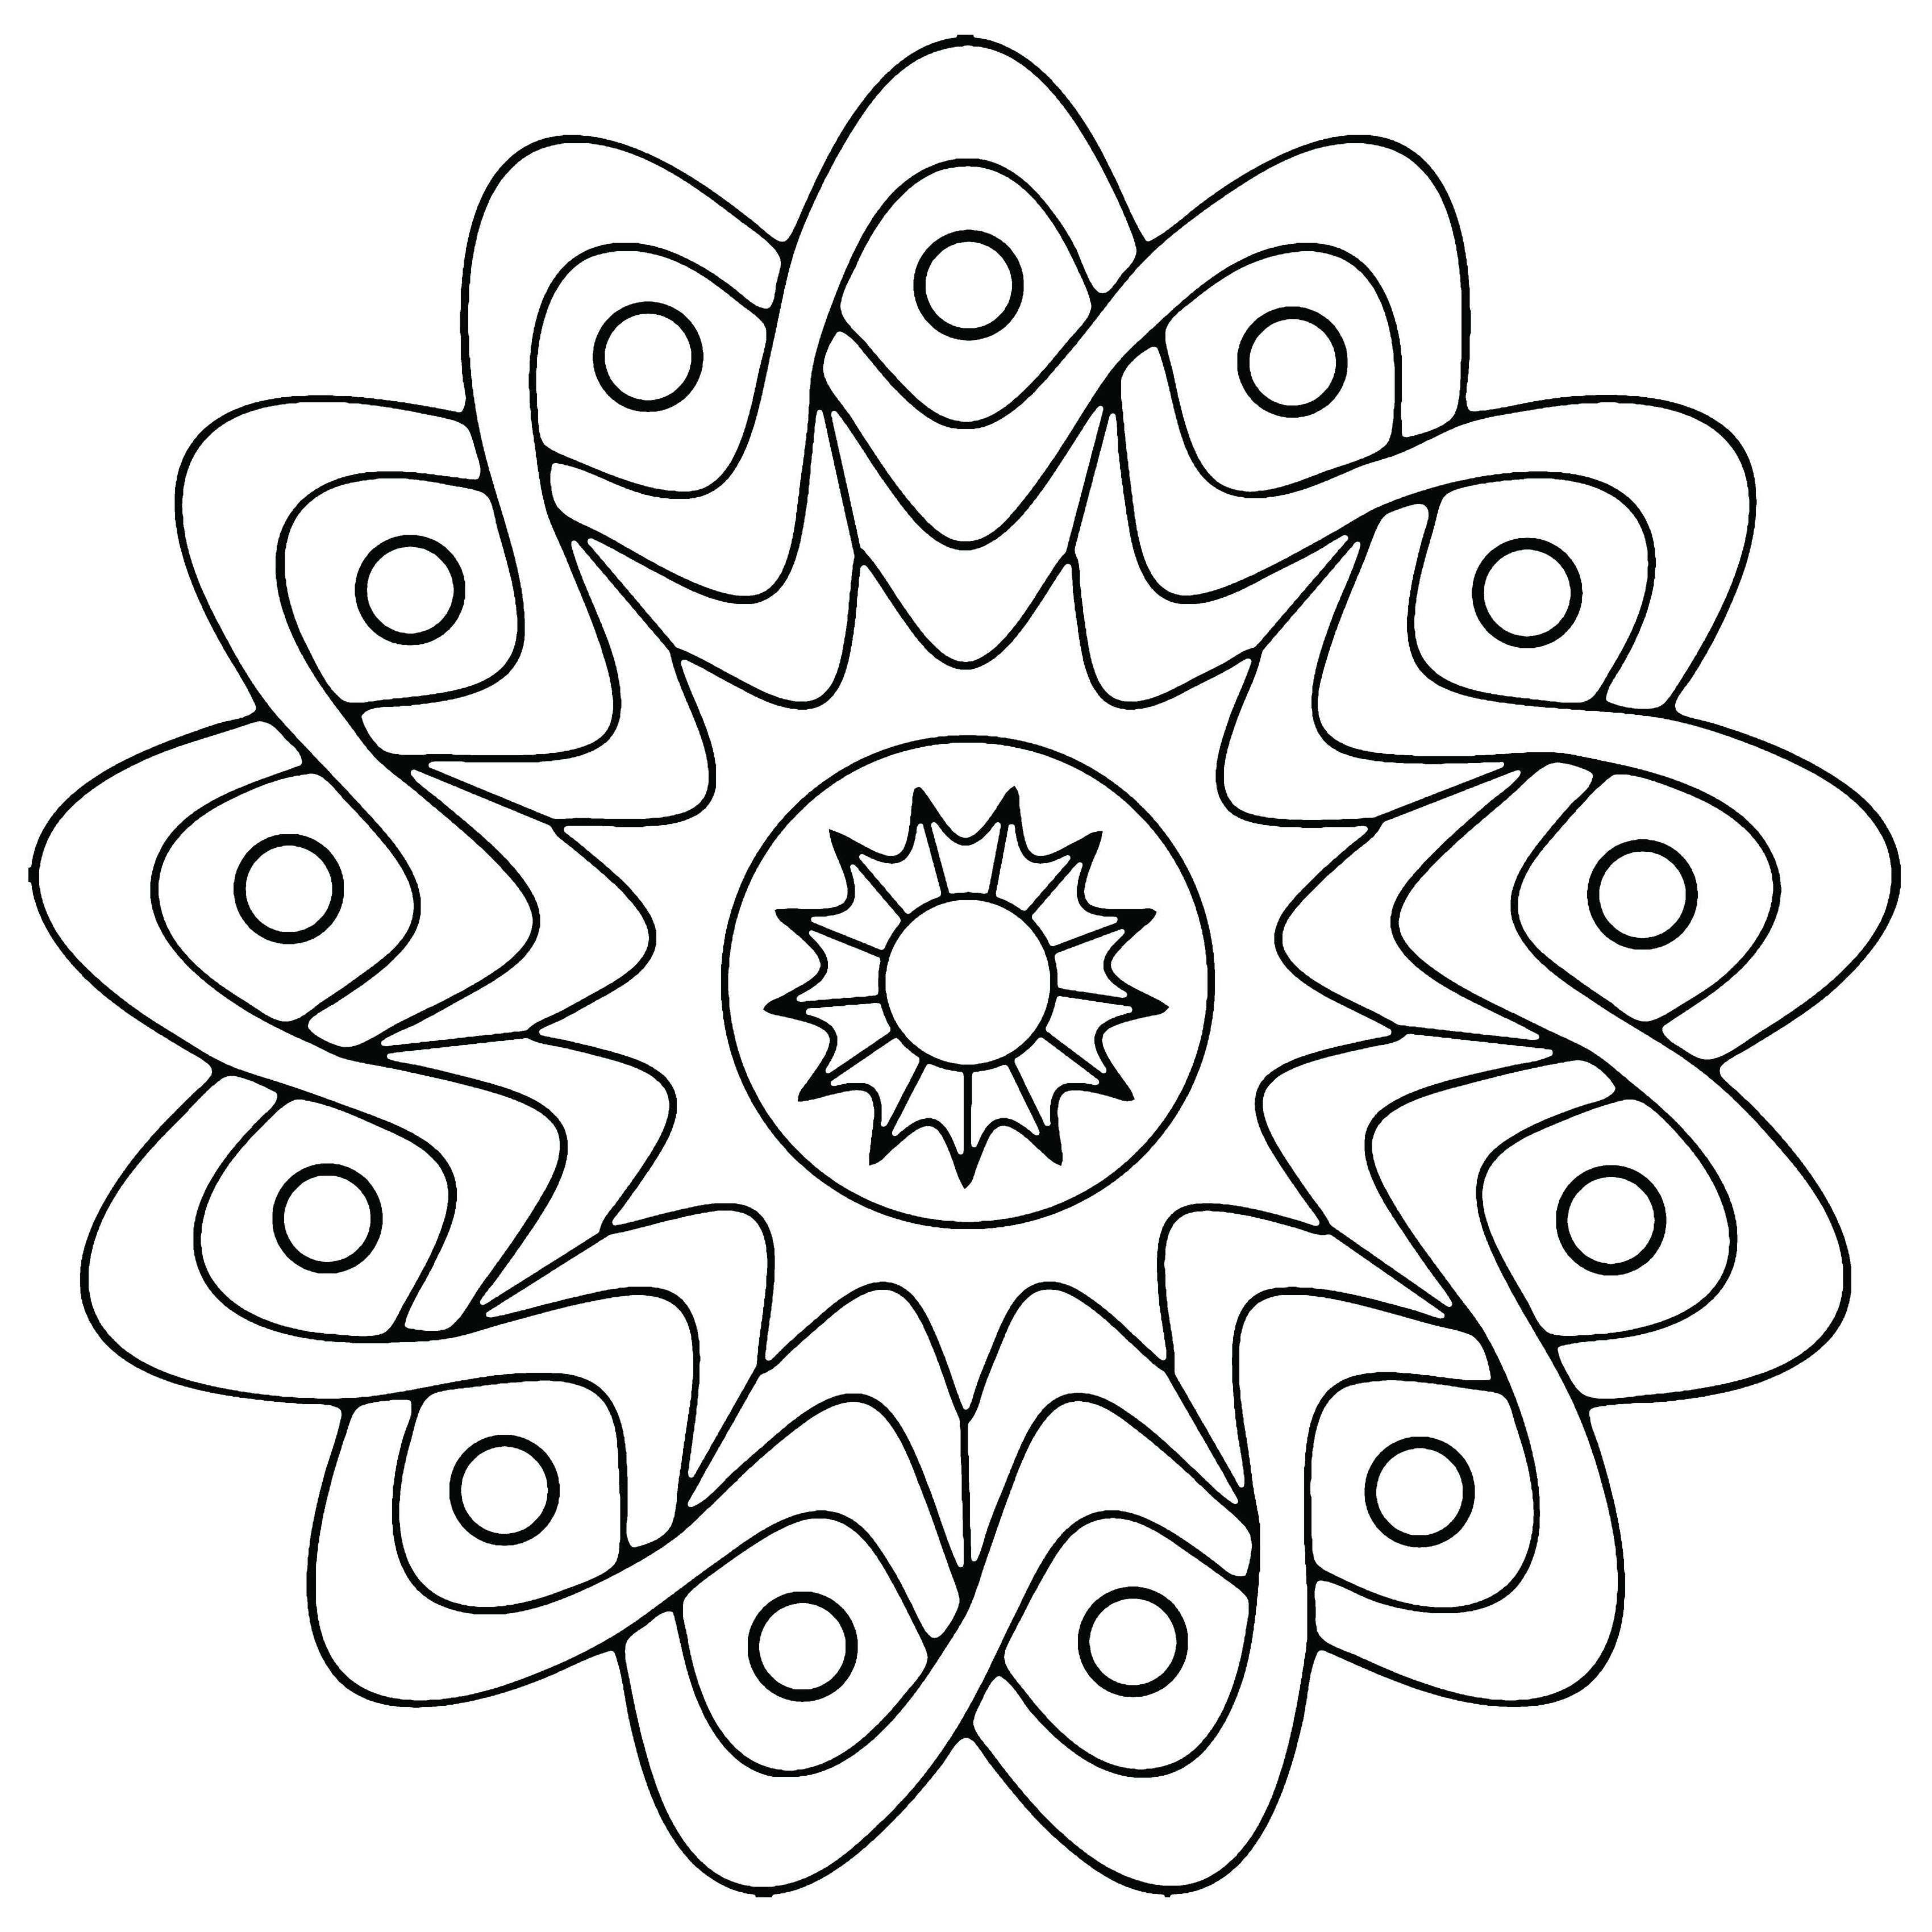 3400x3400 New Free Printable Geometric Coloring Pages For Kids Free